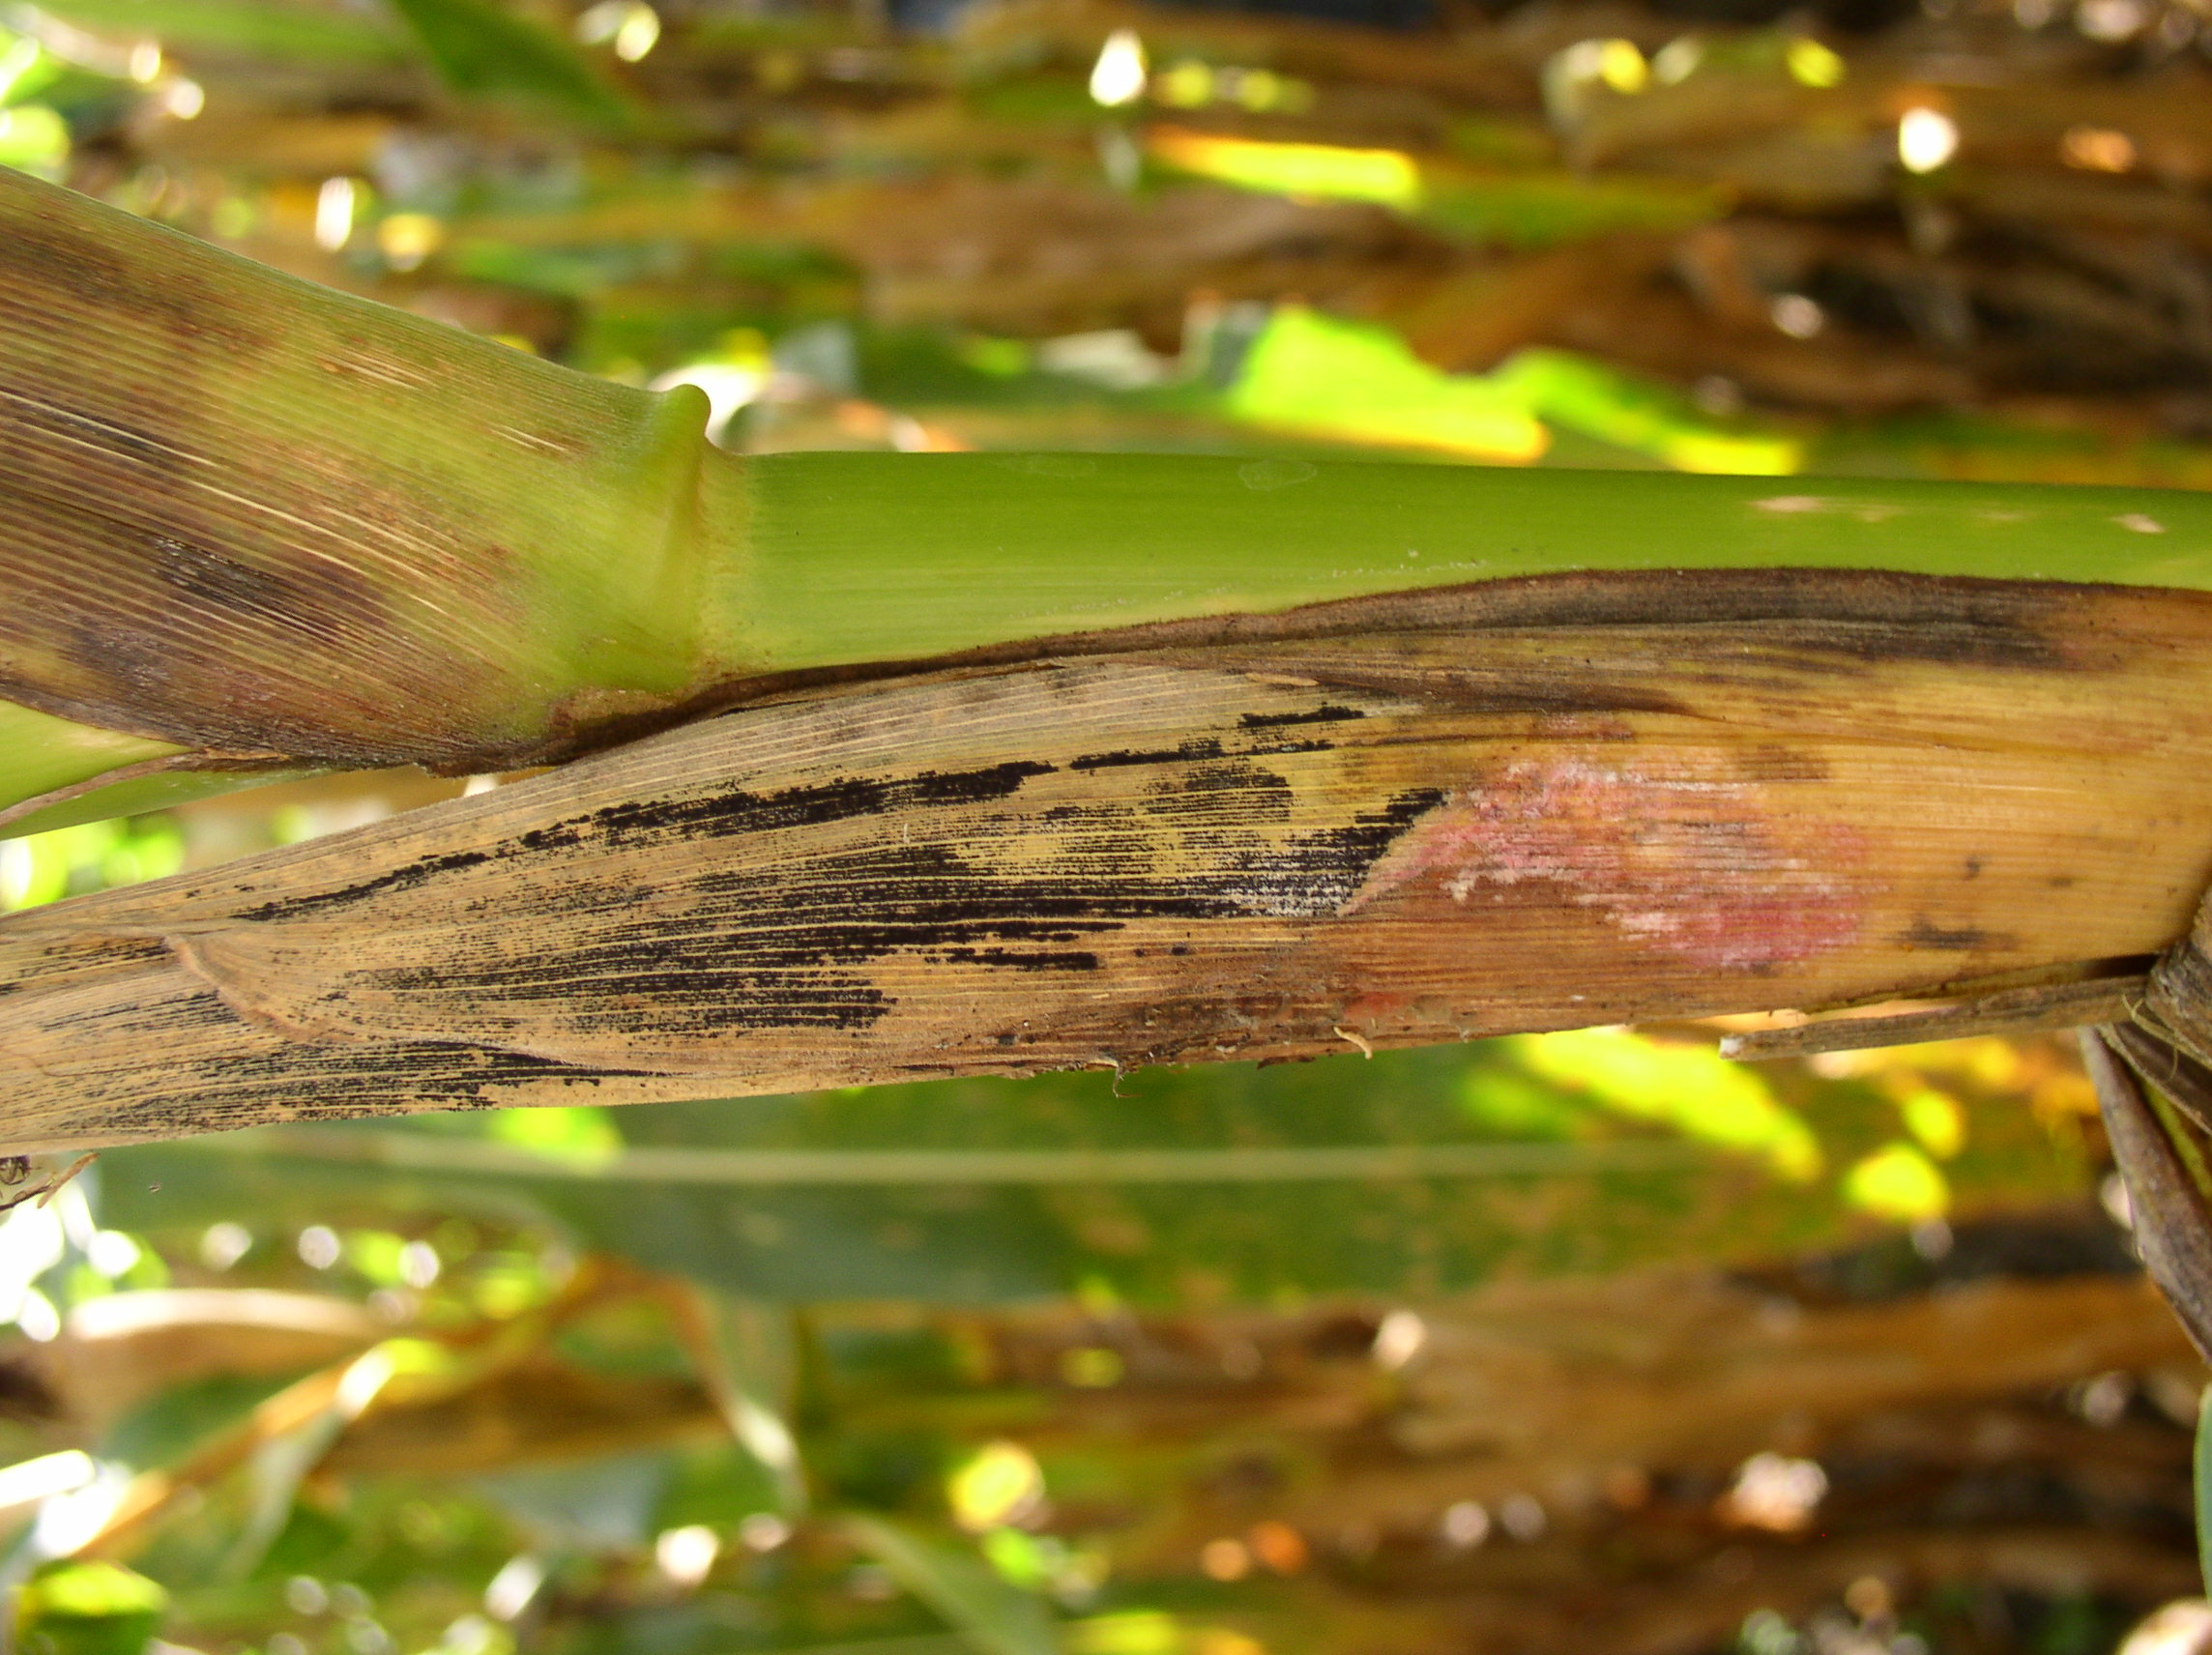 In severe cases, the pink mold is visible on the outside of the husks.